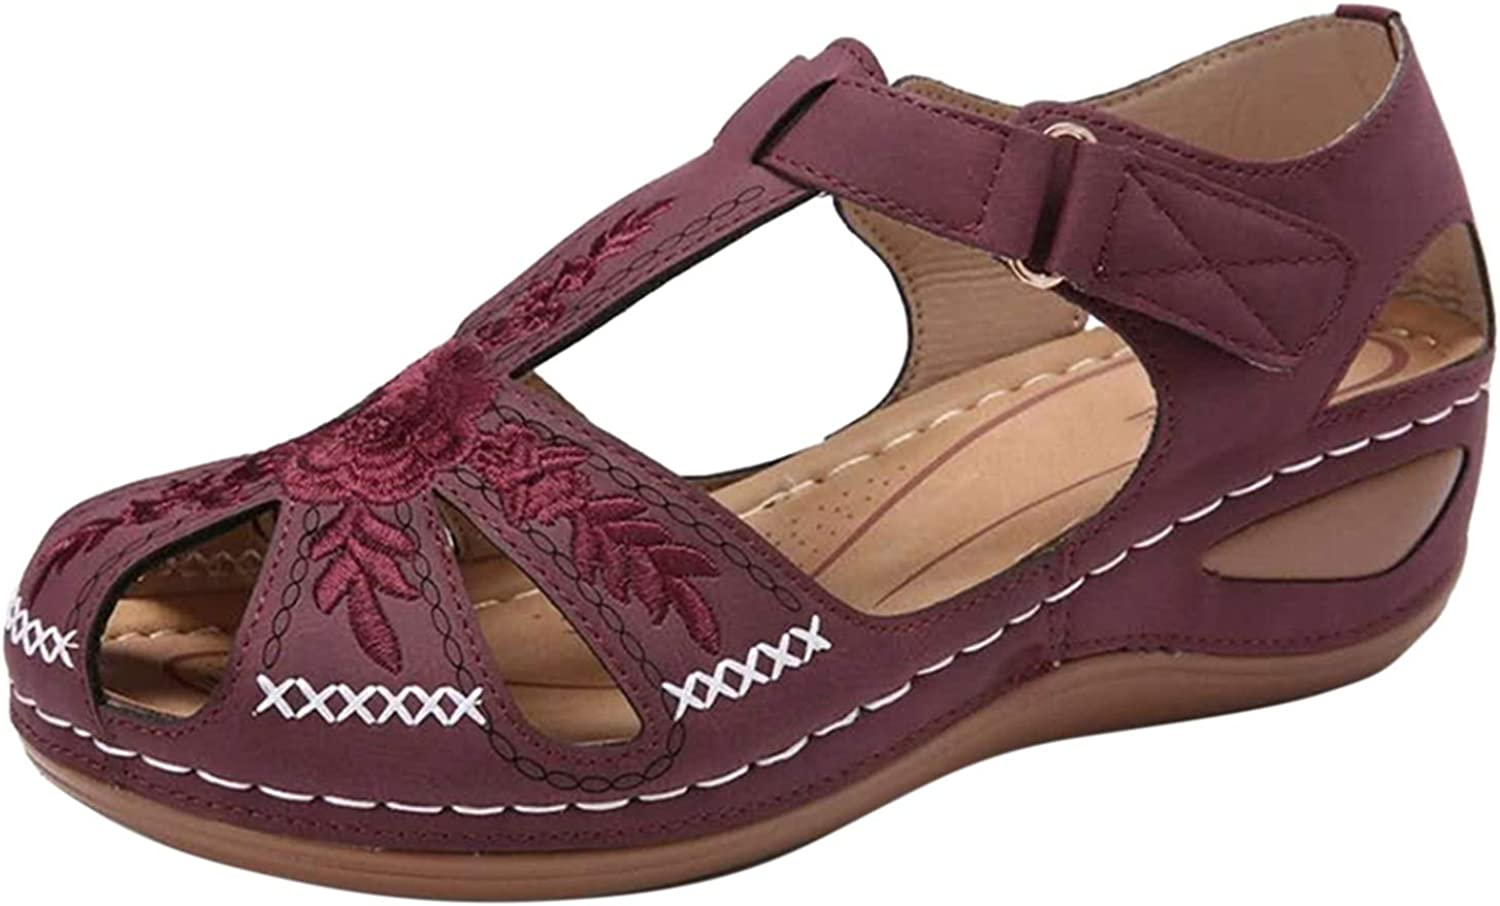 Doad Casual Sandals for Outlet ☆ Free Shipping Women Embroidered Wedge Sli Heel Ranking TOP19